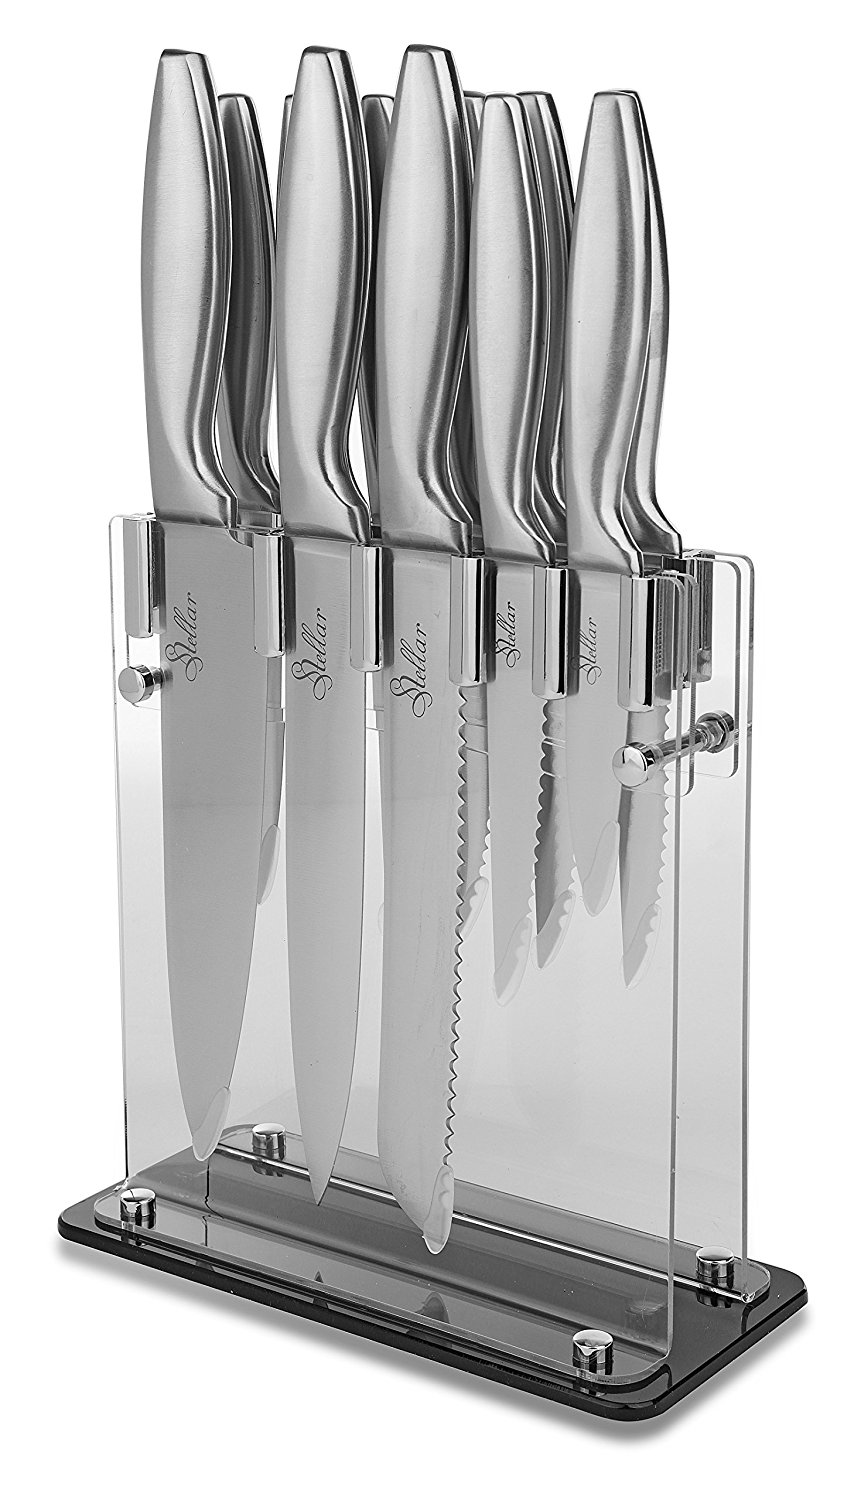 Premium Sharp Kitchen Knives! Stainless Steel Knife Set 12 PIECE. STELLAR Stainless Steel Knife Set : Stand, Chef Knife, Bread Knife, Paring... by LIVEDITOR LIGHTING